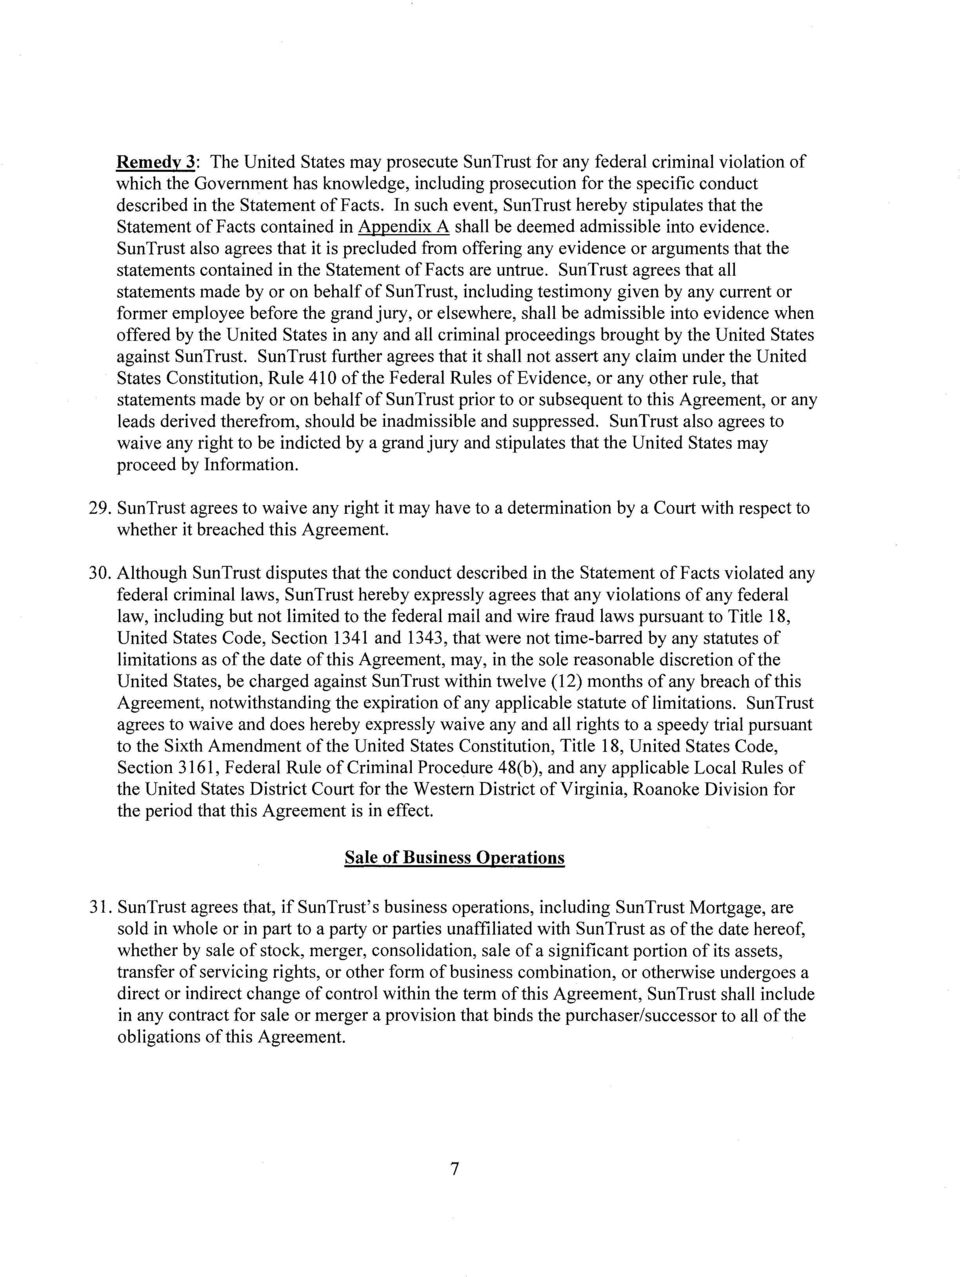 RESTITUTION AND REMEDIATION AGREEMENT - PDF